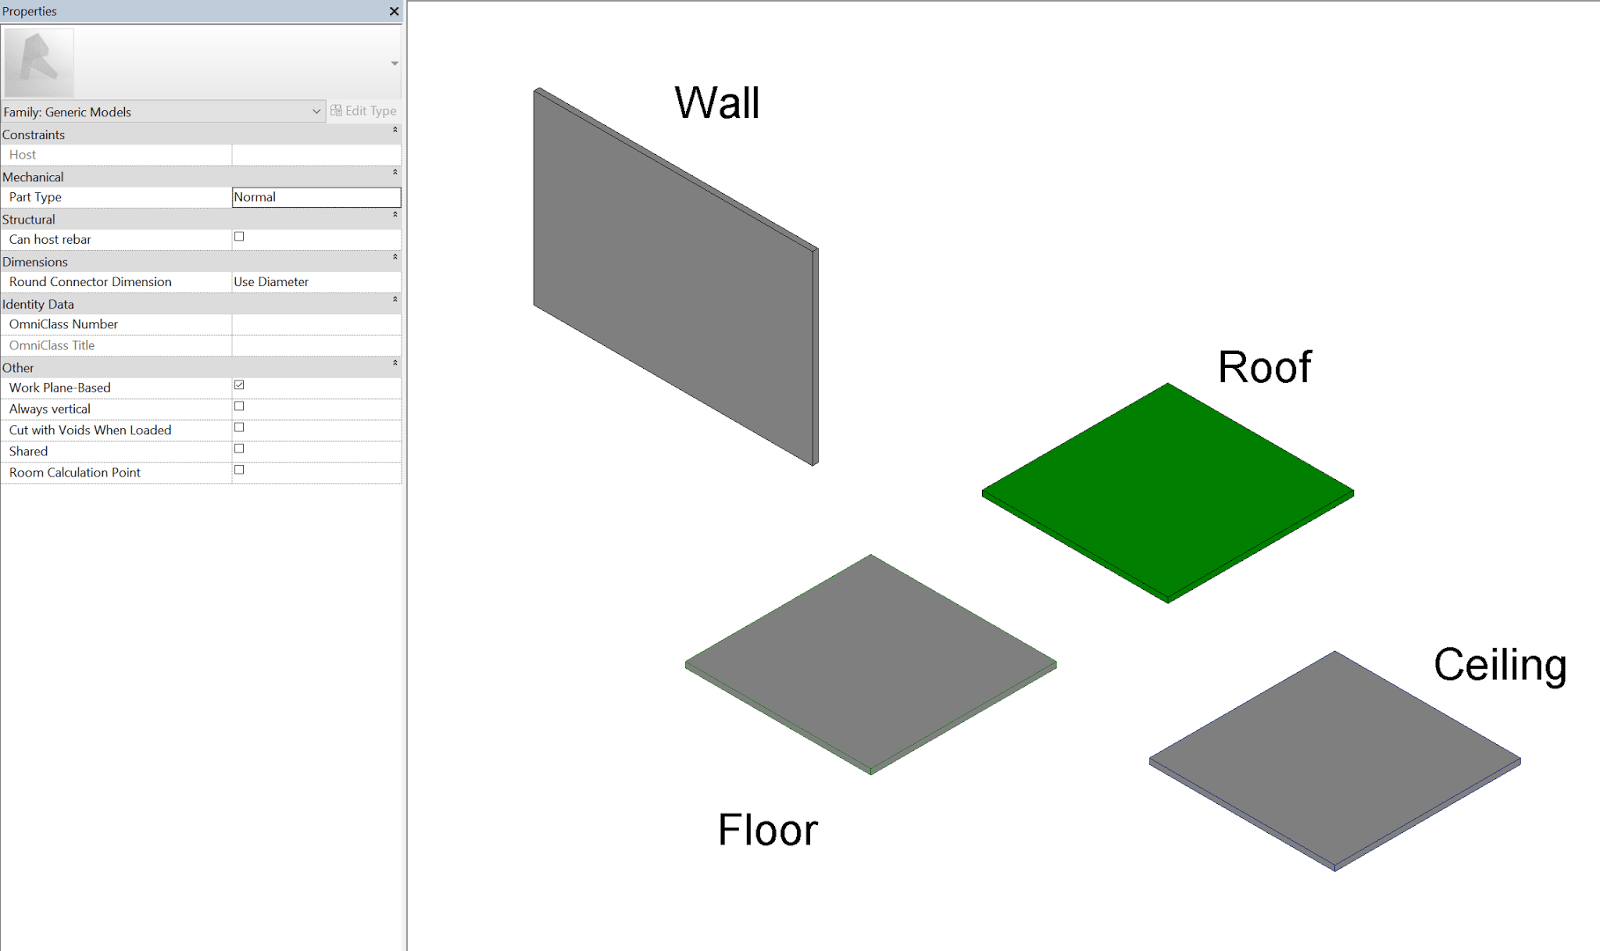 Convert Between Hosted Wall, Face, Ceiling, Floor, and Non-Hosted Families in Revit